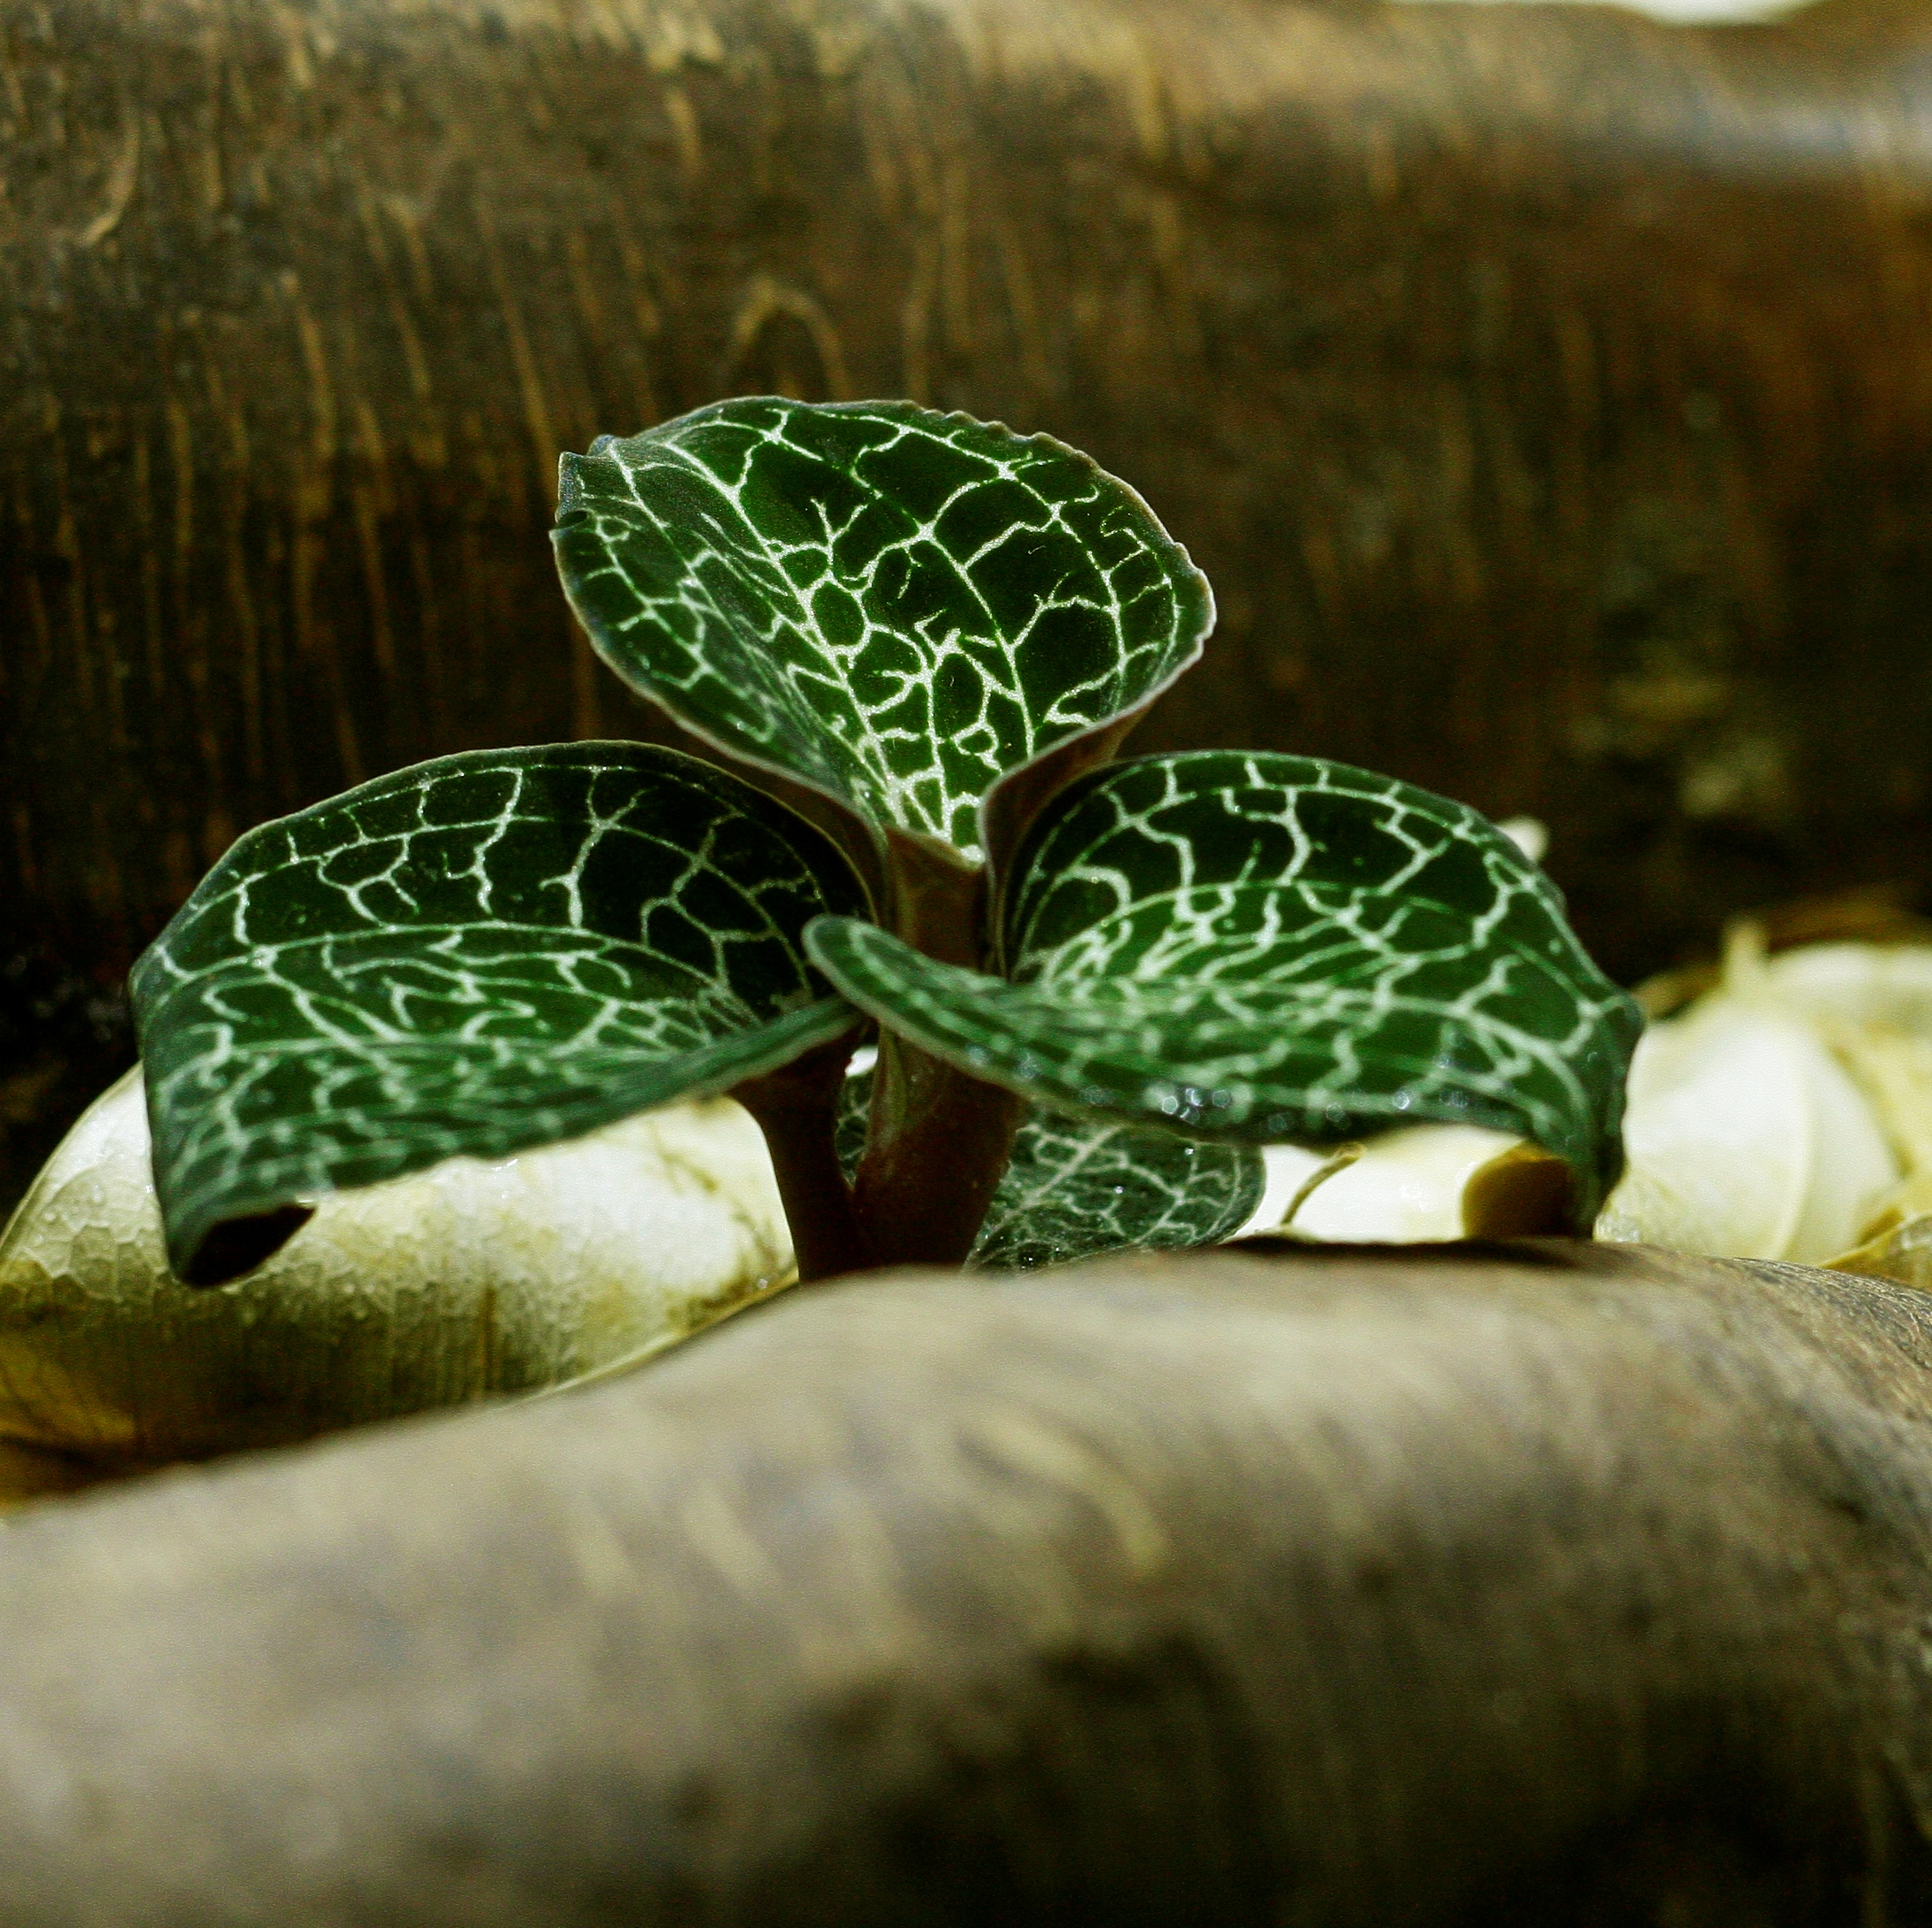 Anoectochilus formosanus , a beautifully-patterned small species of orchid which grows terrestrially in leaf litter in its native habitat, and which loves the moist humid surroundings of a terrarium. Image ©  In Situ Plants .